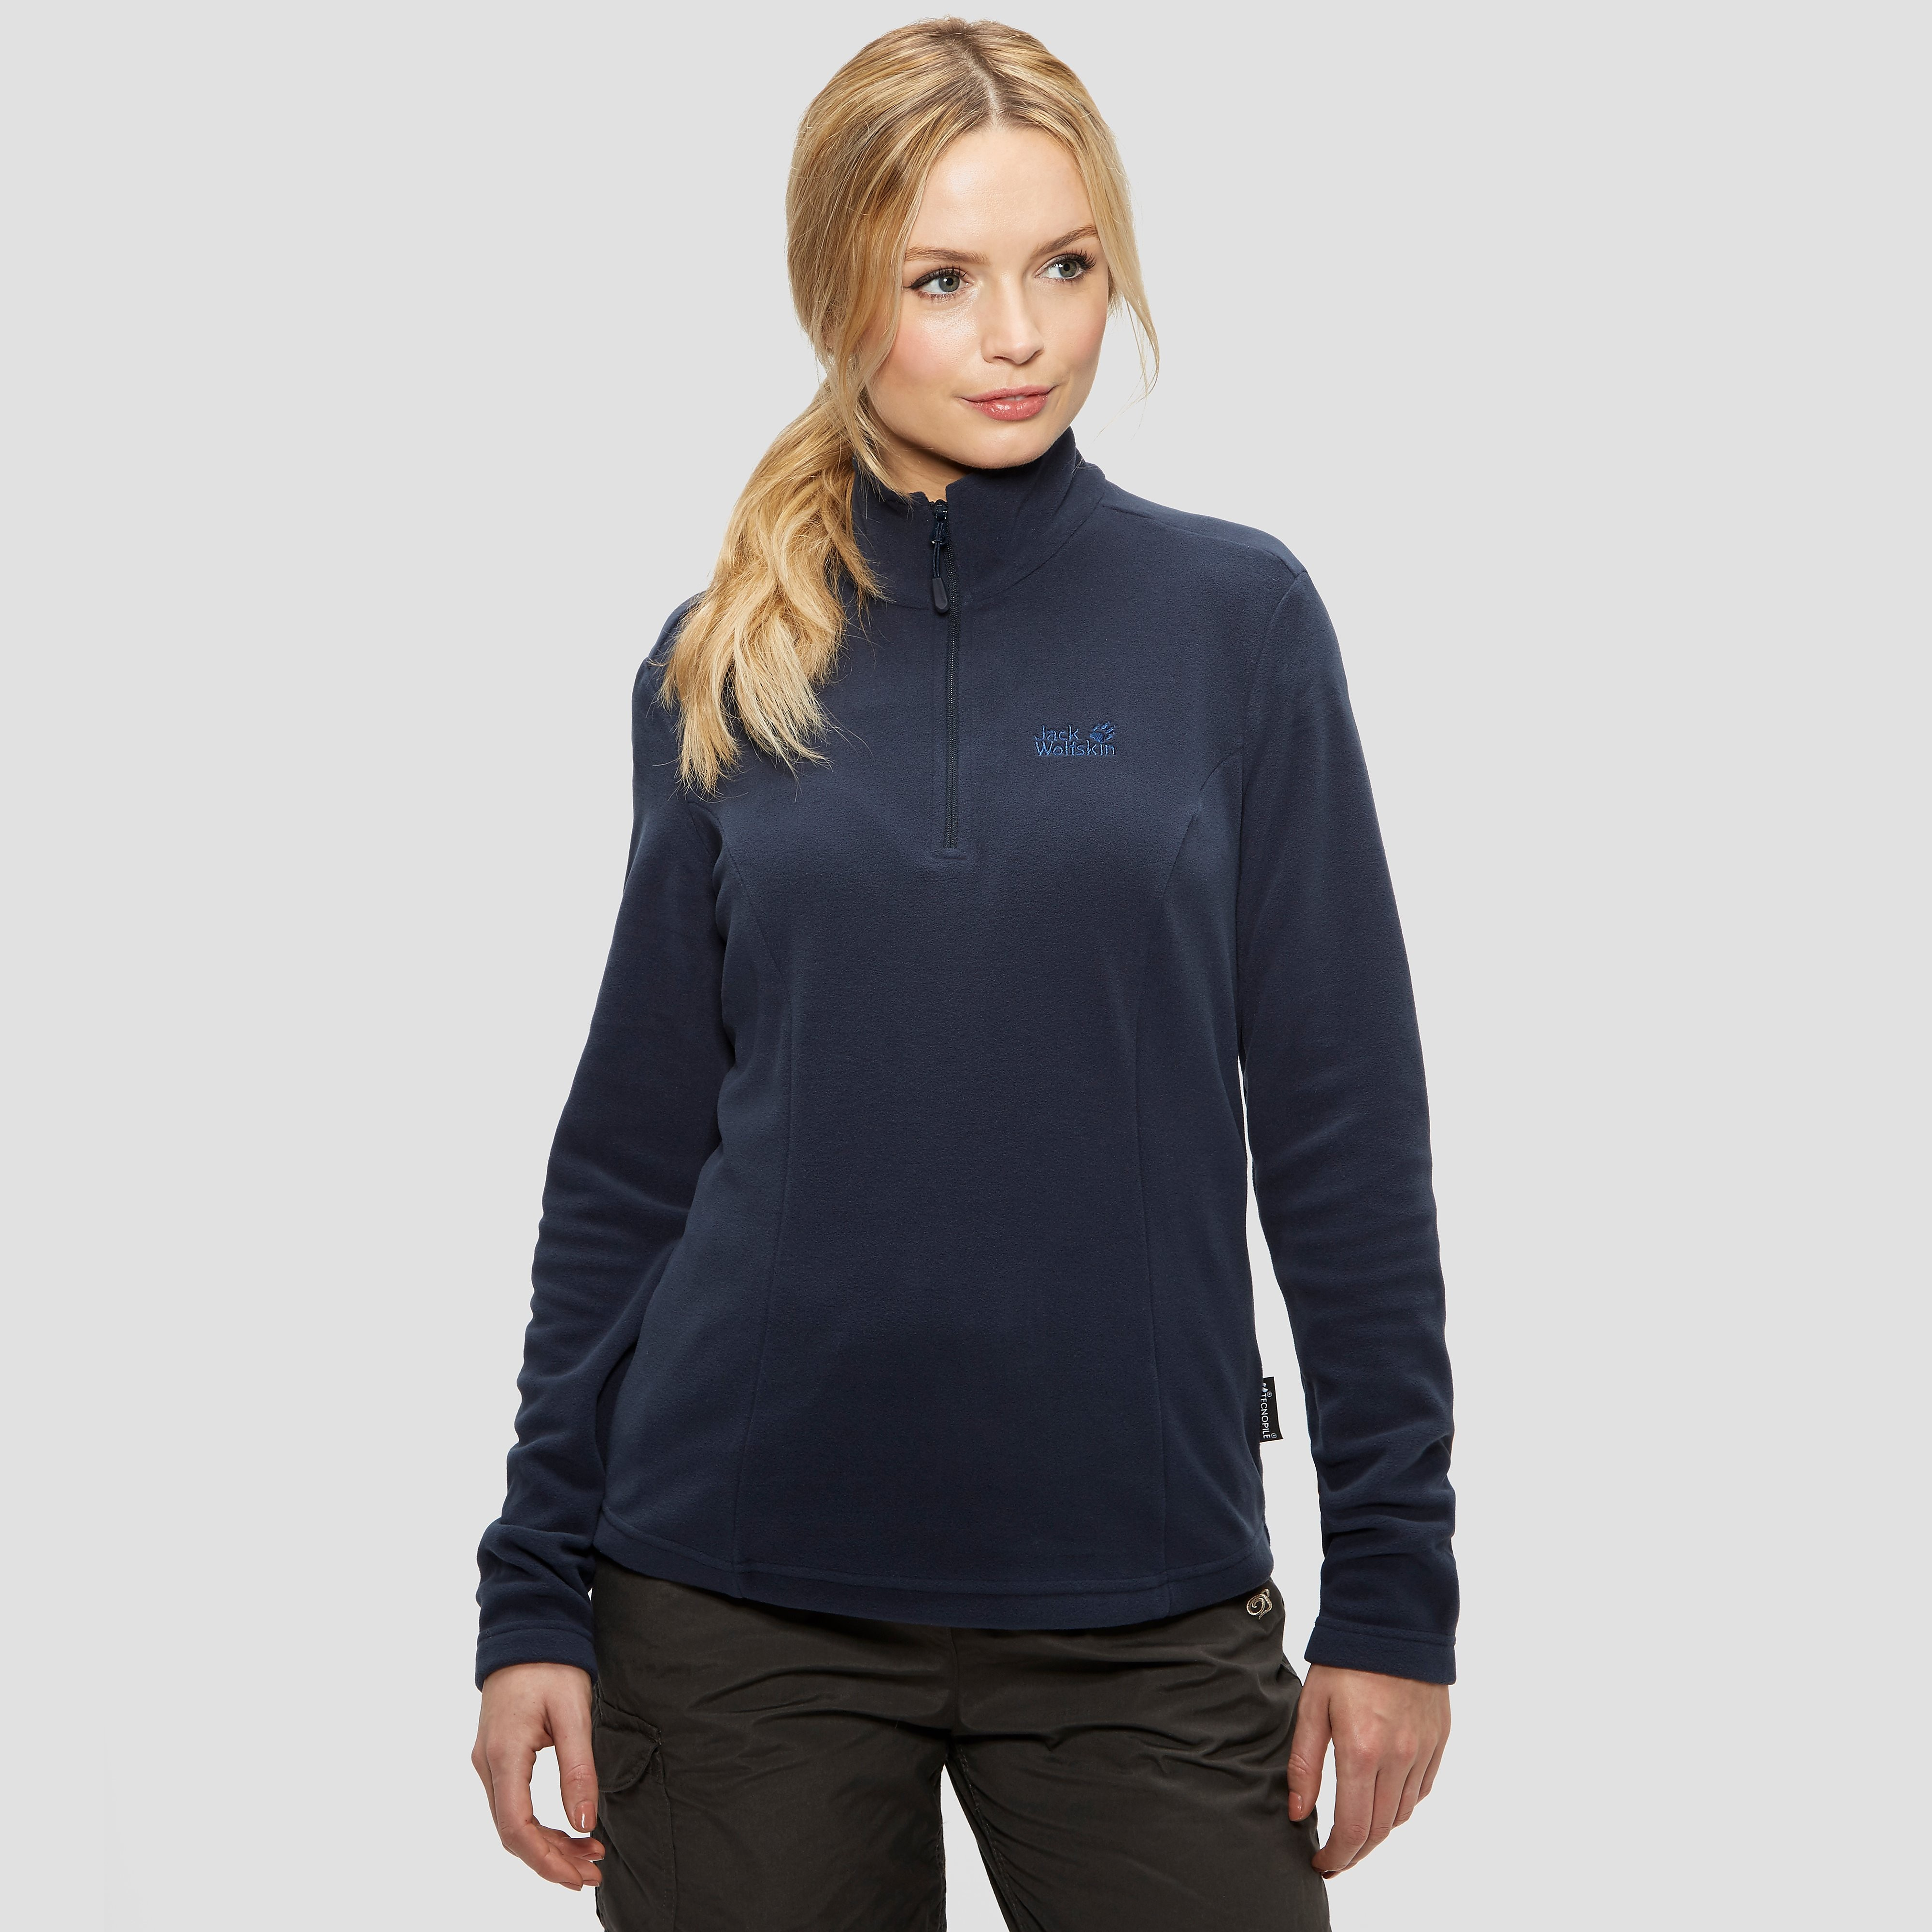 Jack Wolfskin Women's Gecko Fleece Jumper